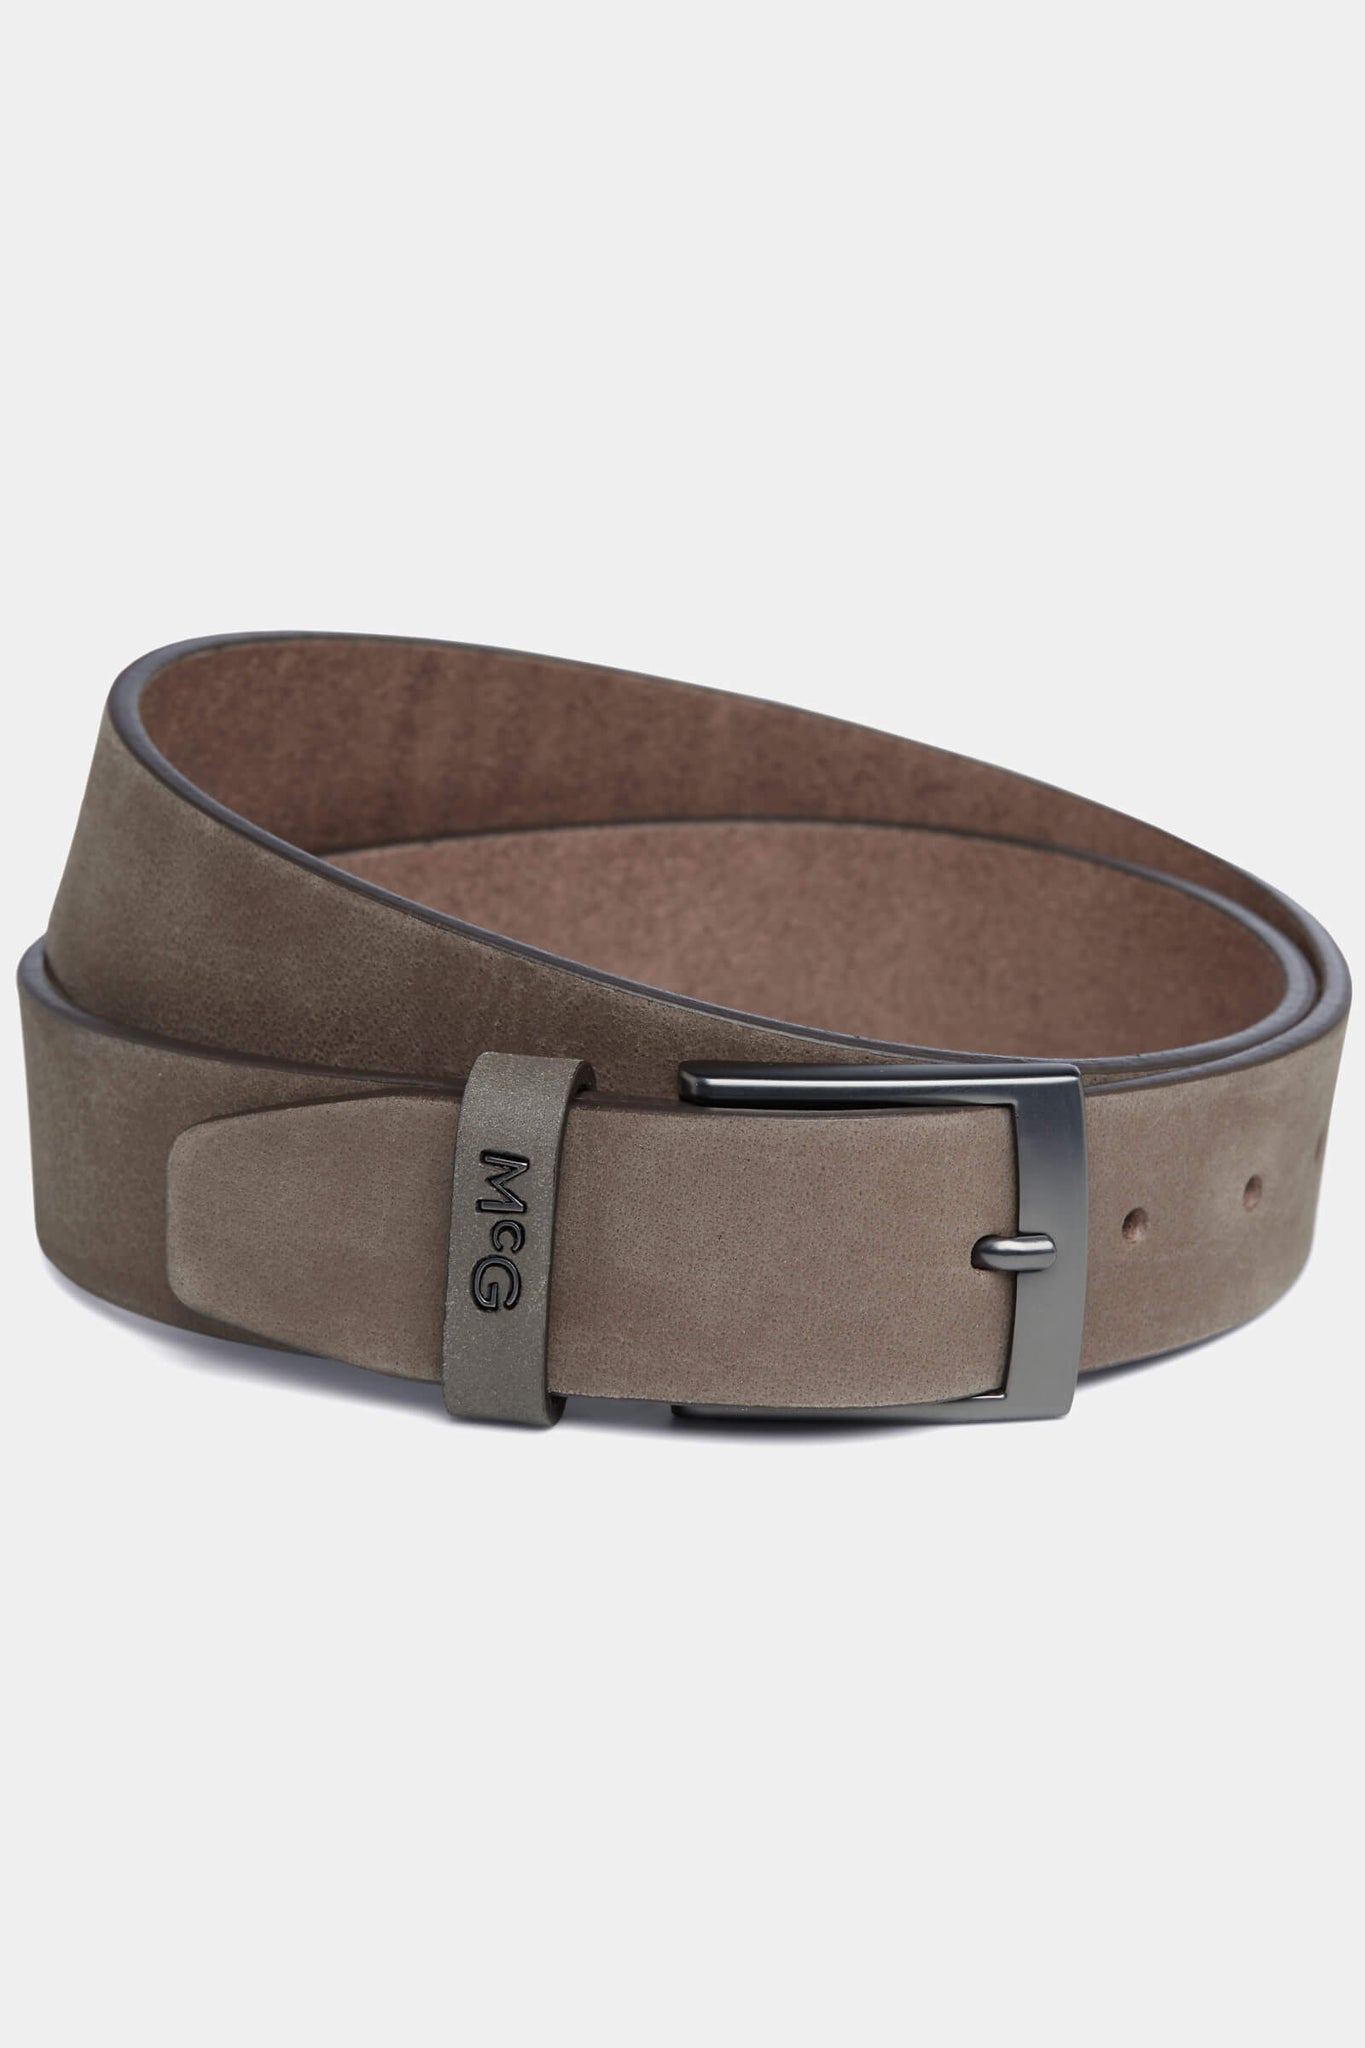 The McG Matt Leather Belt